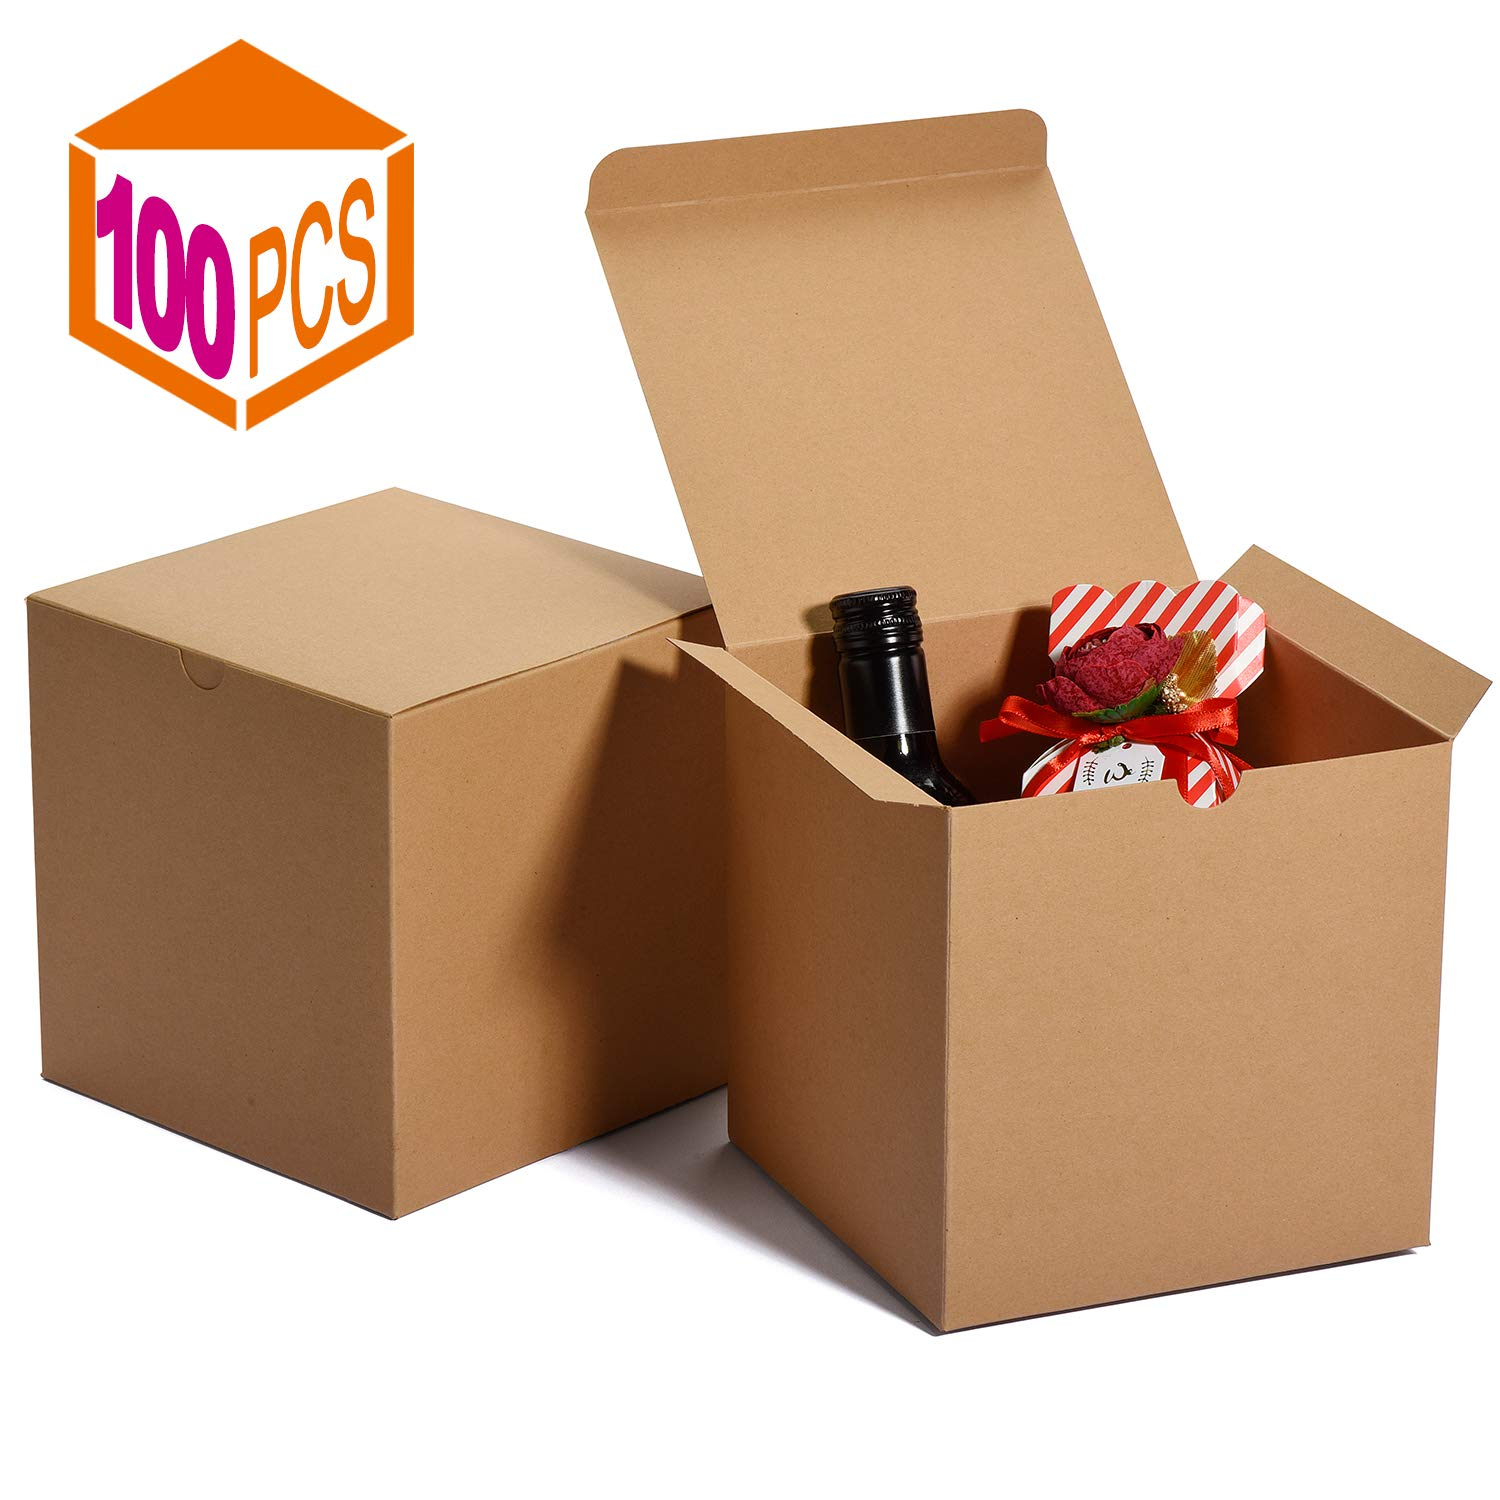 MESHA Kraft Boxes,Brown Gift Boxes 6 x 6 x 6 inches, Paper Gift Boxes with Lids for Gifts, Crafting, Cupcake Boxes (100) by MESHA